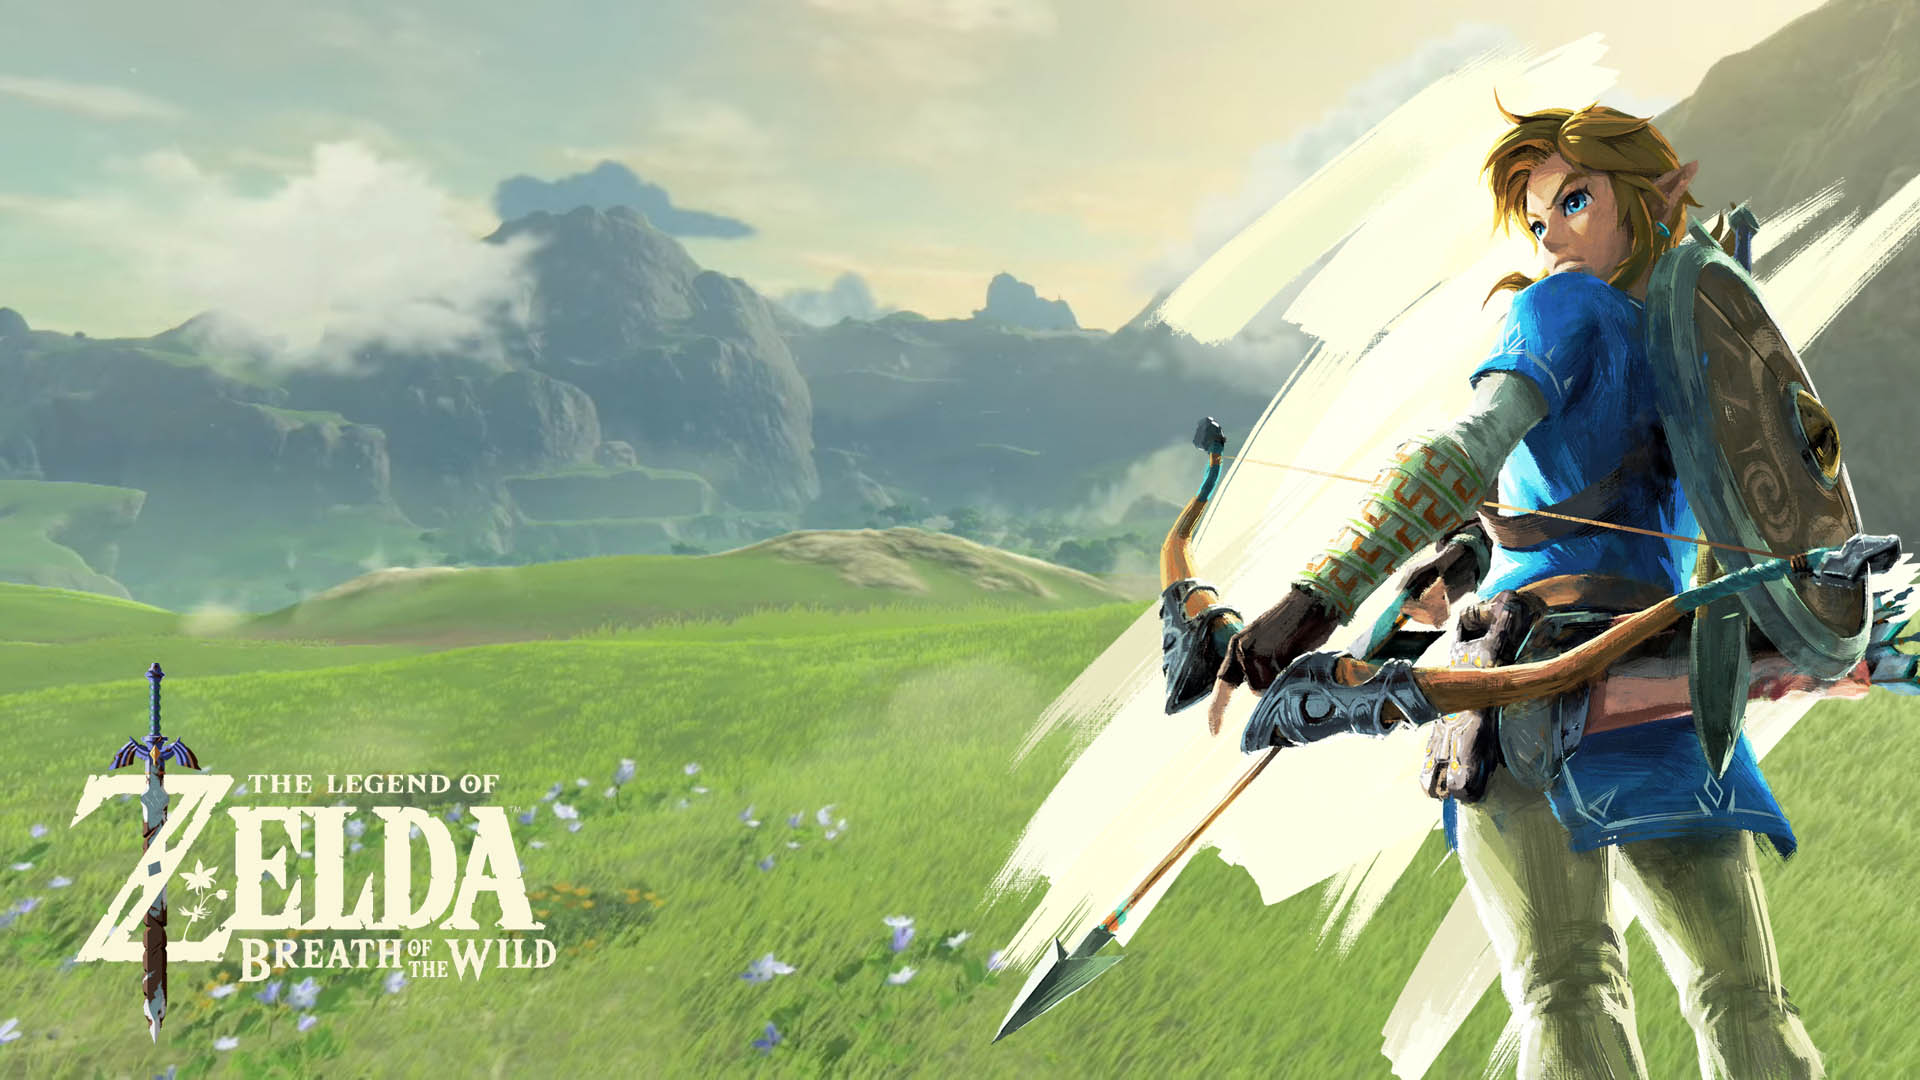 Link The Legend Of Zelda Breath Of The Wild Wallpaper 7136 Redbrick